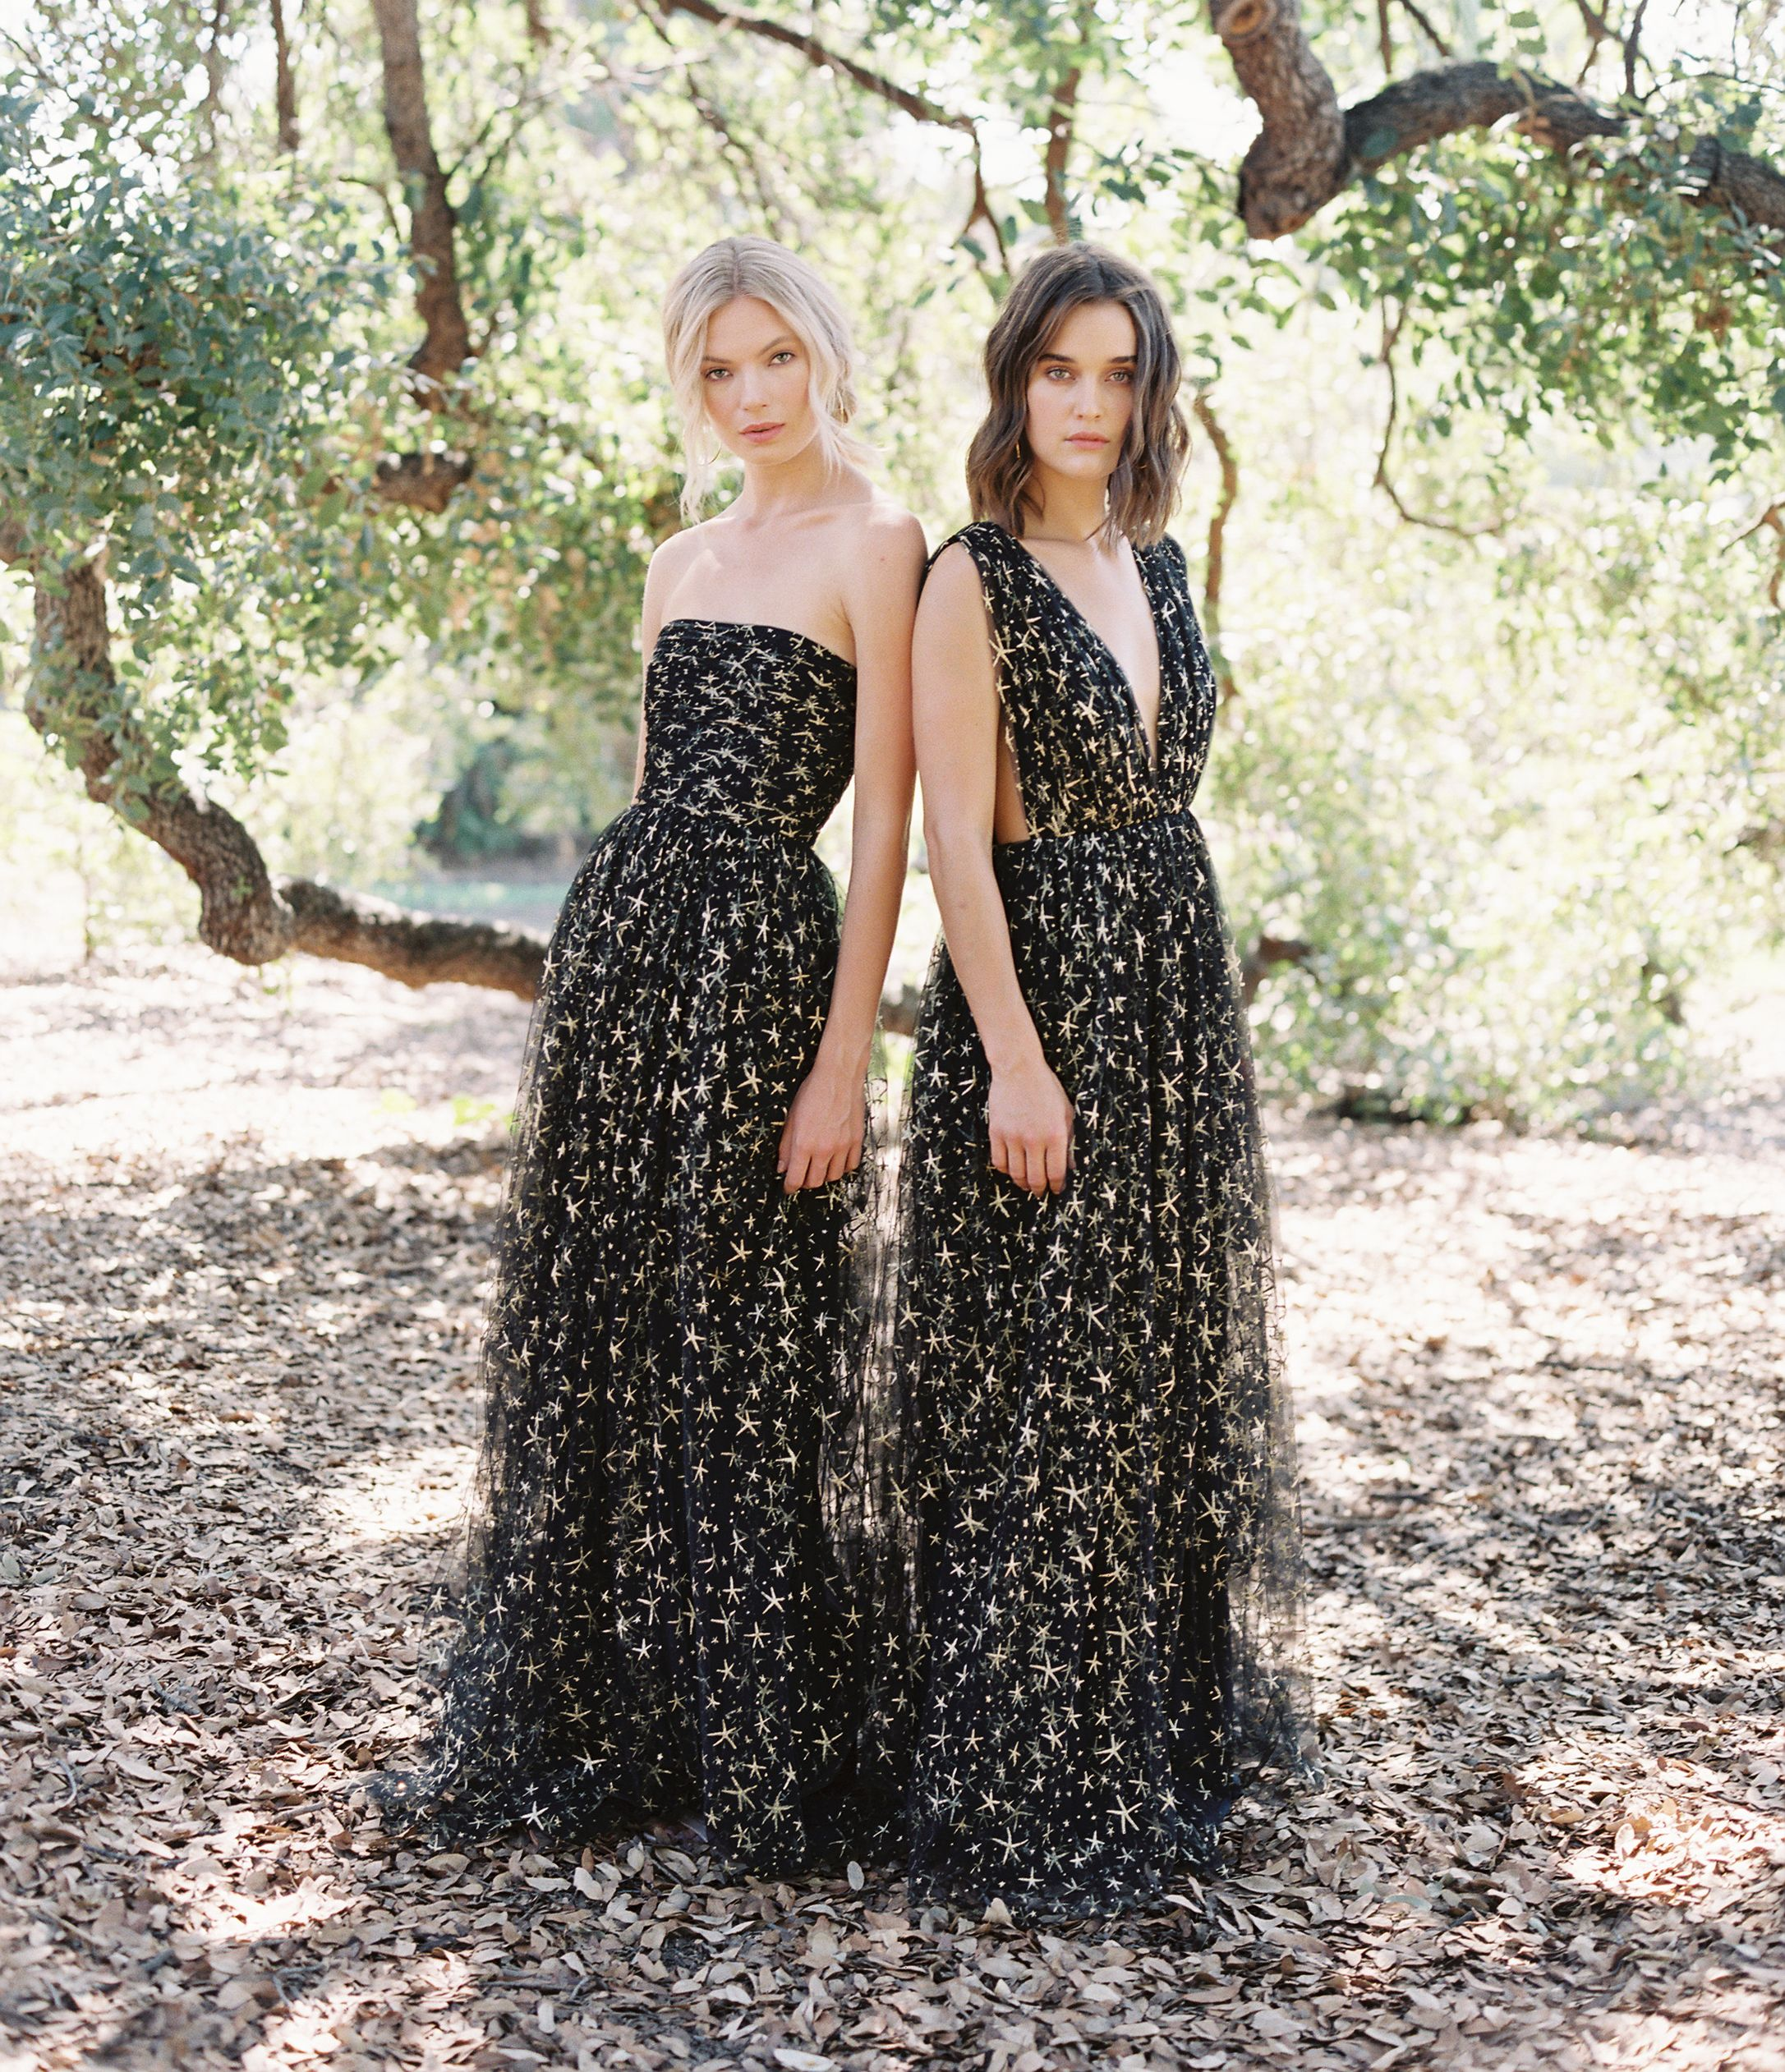 We Re Seeing Stars With These Glittering New Joanna August Star Tulle Bridesmaid Dresses Avail Black Bridesmaid Dresses Bridesmaid Gown Tulle Bridesmaid Dress [ 2523 x 2173 Pixel ]